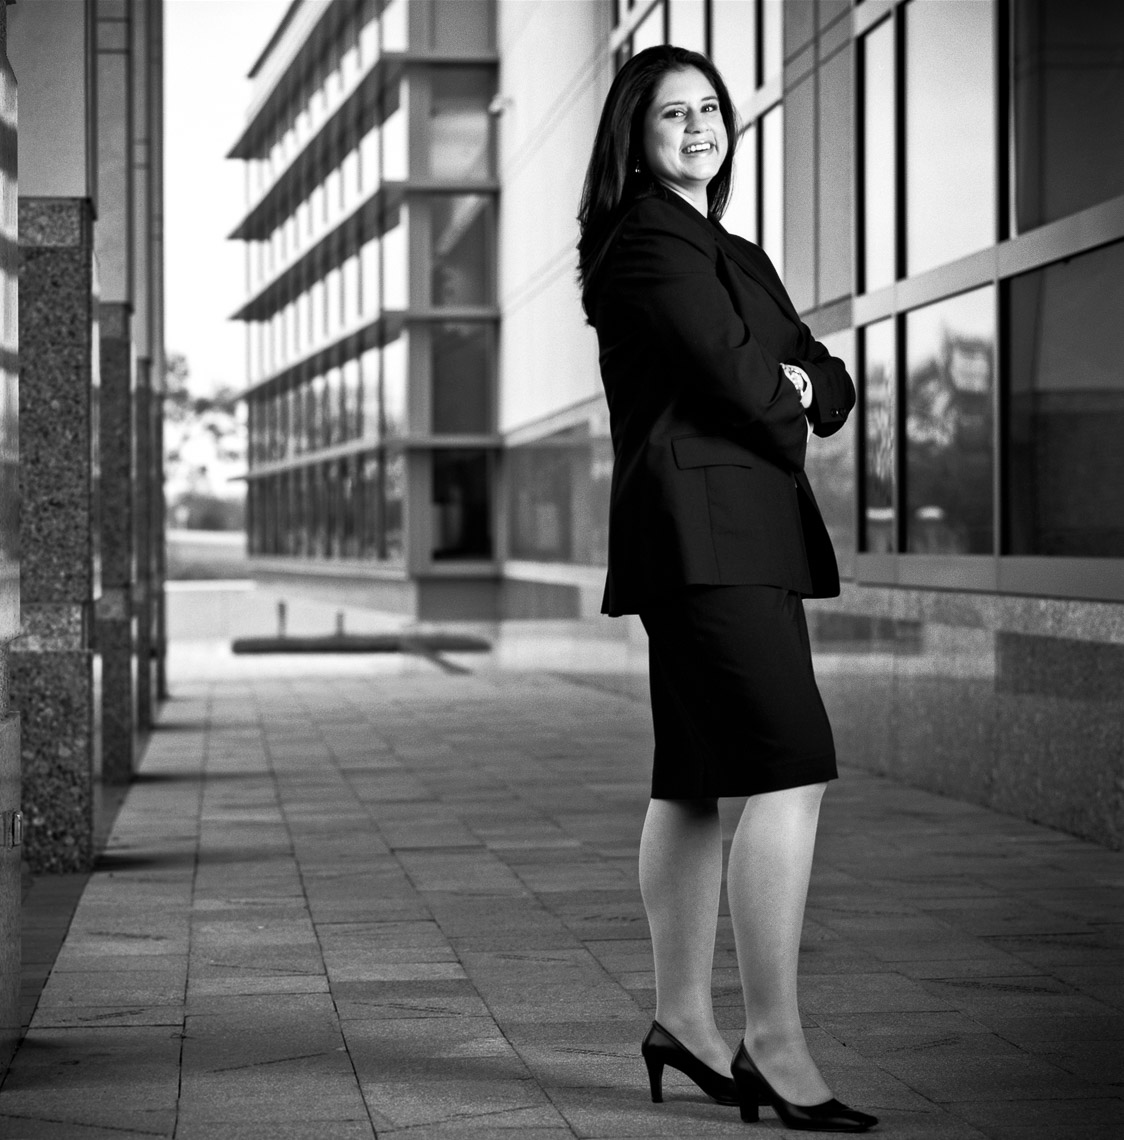 Cristina Candia Lopez - National Society of Hispanic MBAs Created for Spirit Magazine